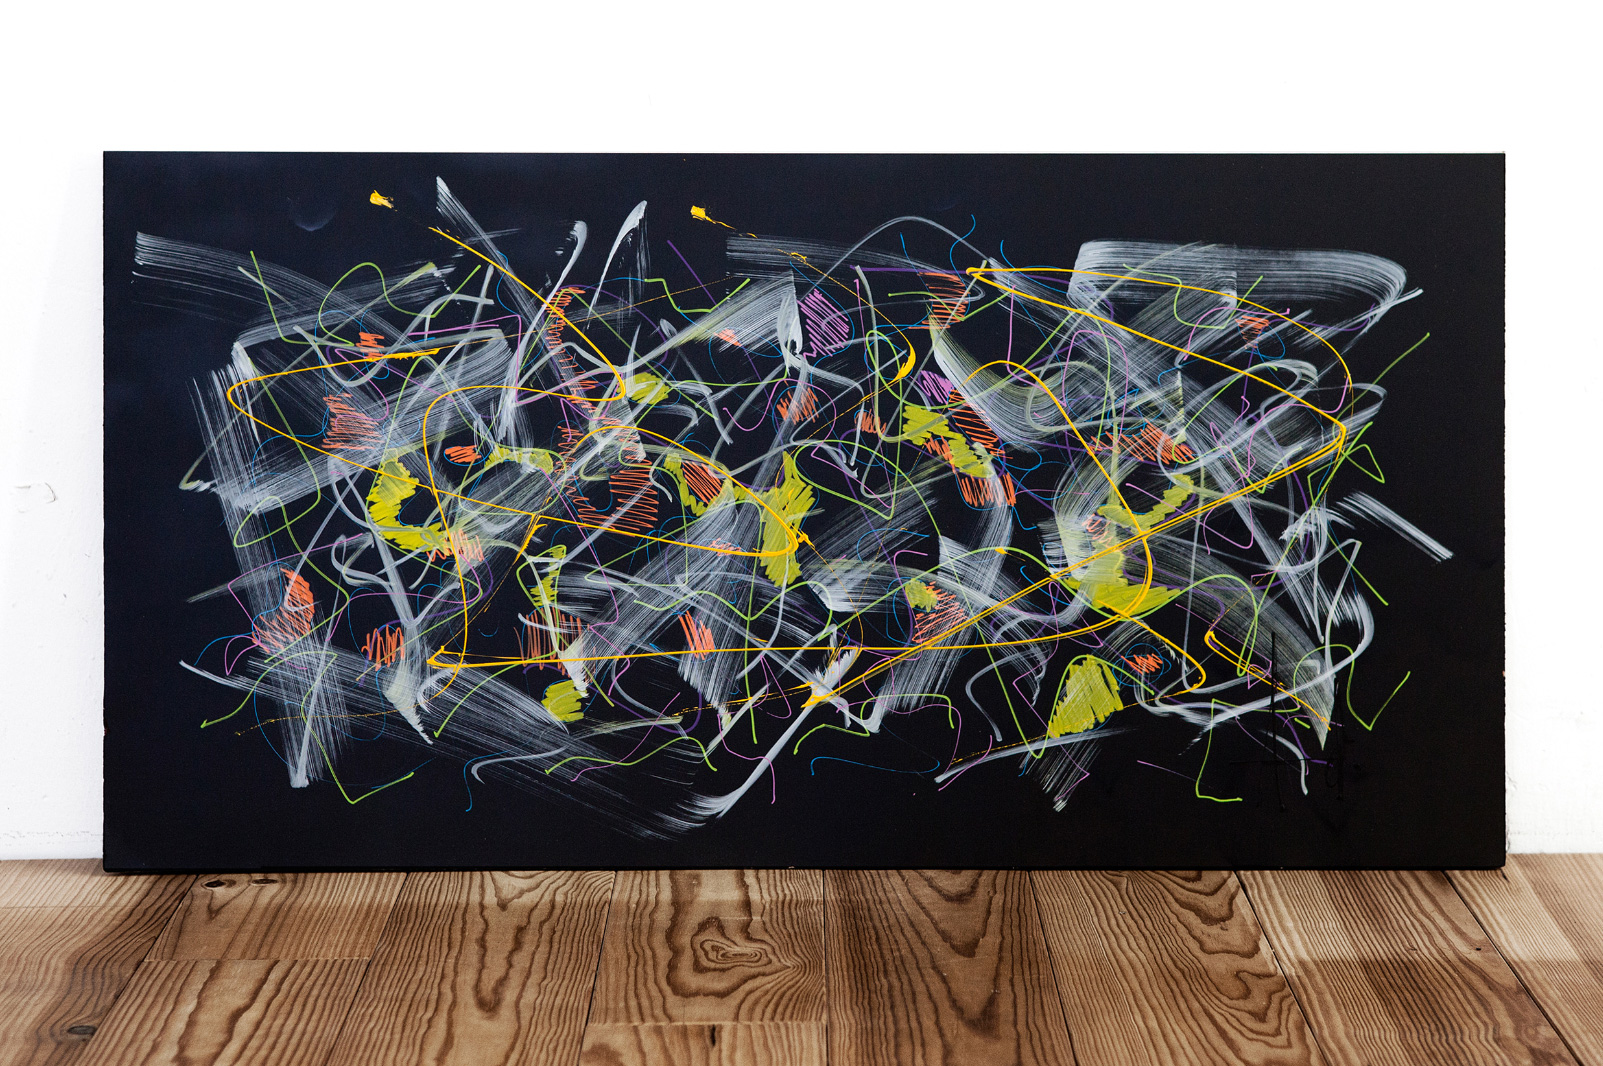 ROB_ADALIERD_PAINTING_ABSTRACT_CONTEMPORARY_ART_VIENNA_23.jpg